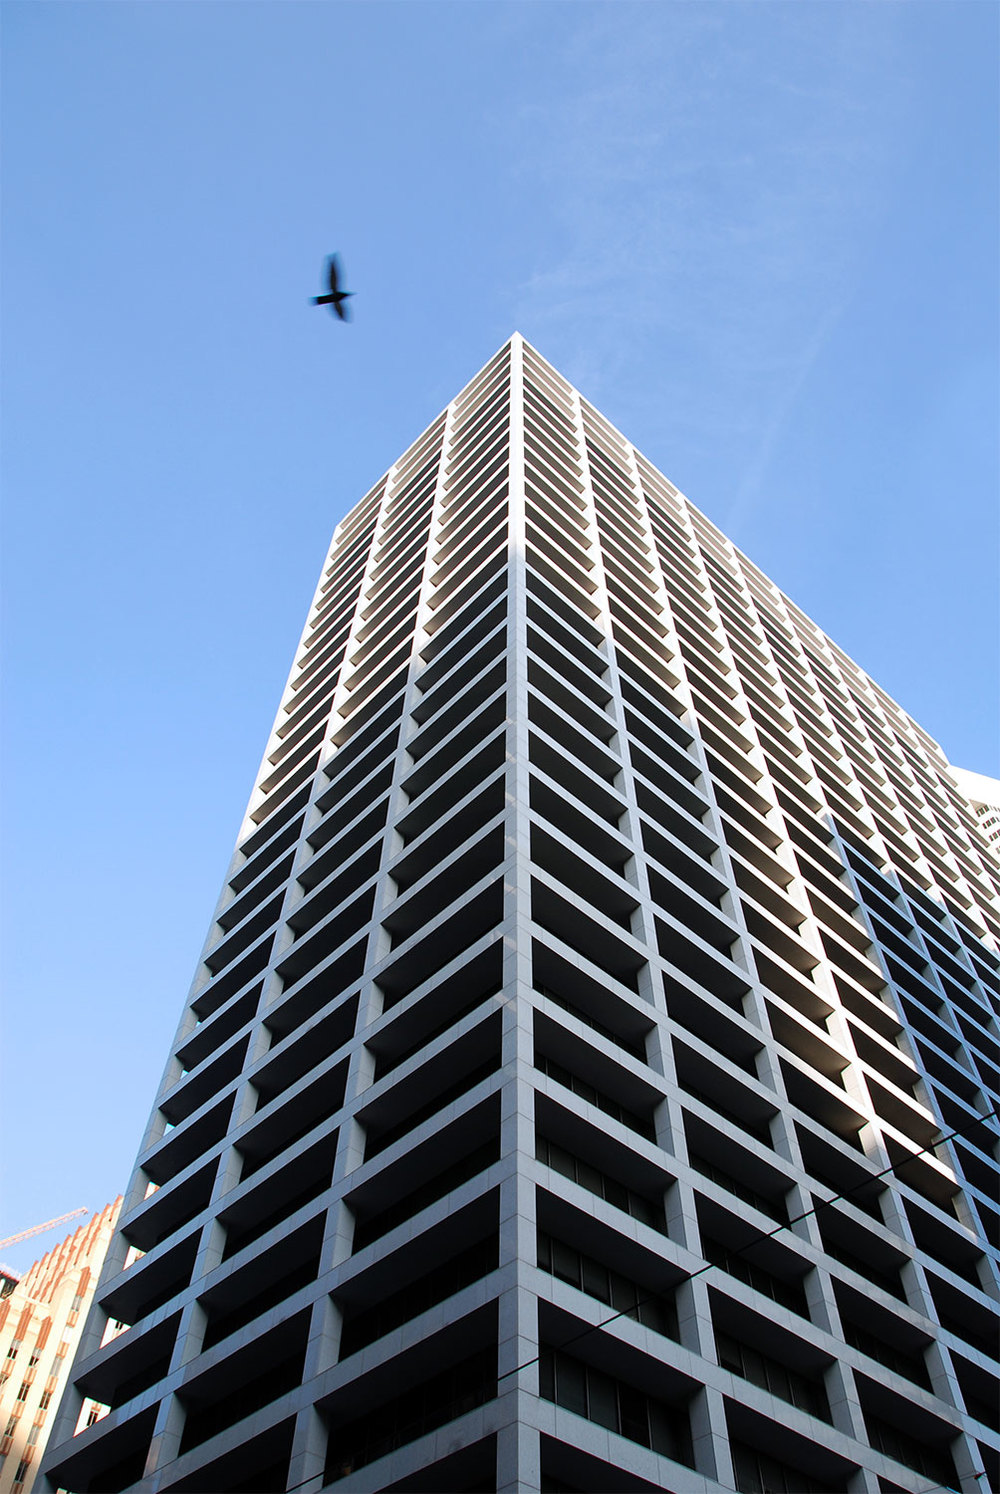 The former First City National Bank Building on Main Street was Houston's first modernist skyscraper when it opened in 1961. / photo by Jim Parsons